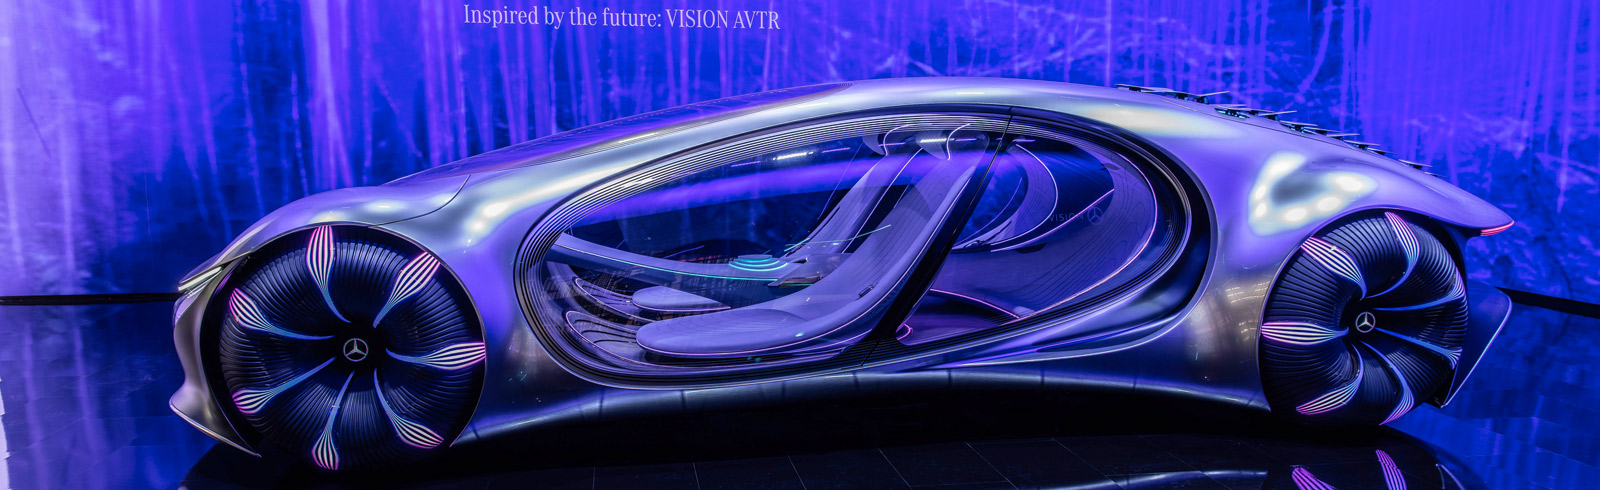 The Mercedes-Benz VISION AVTR presents the Brain Computer Interface